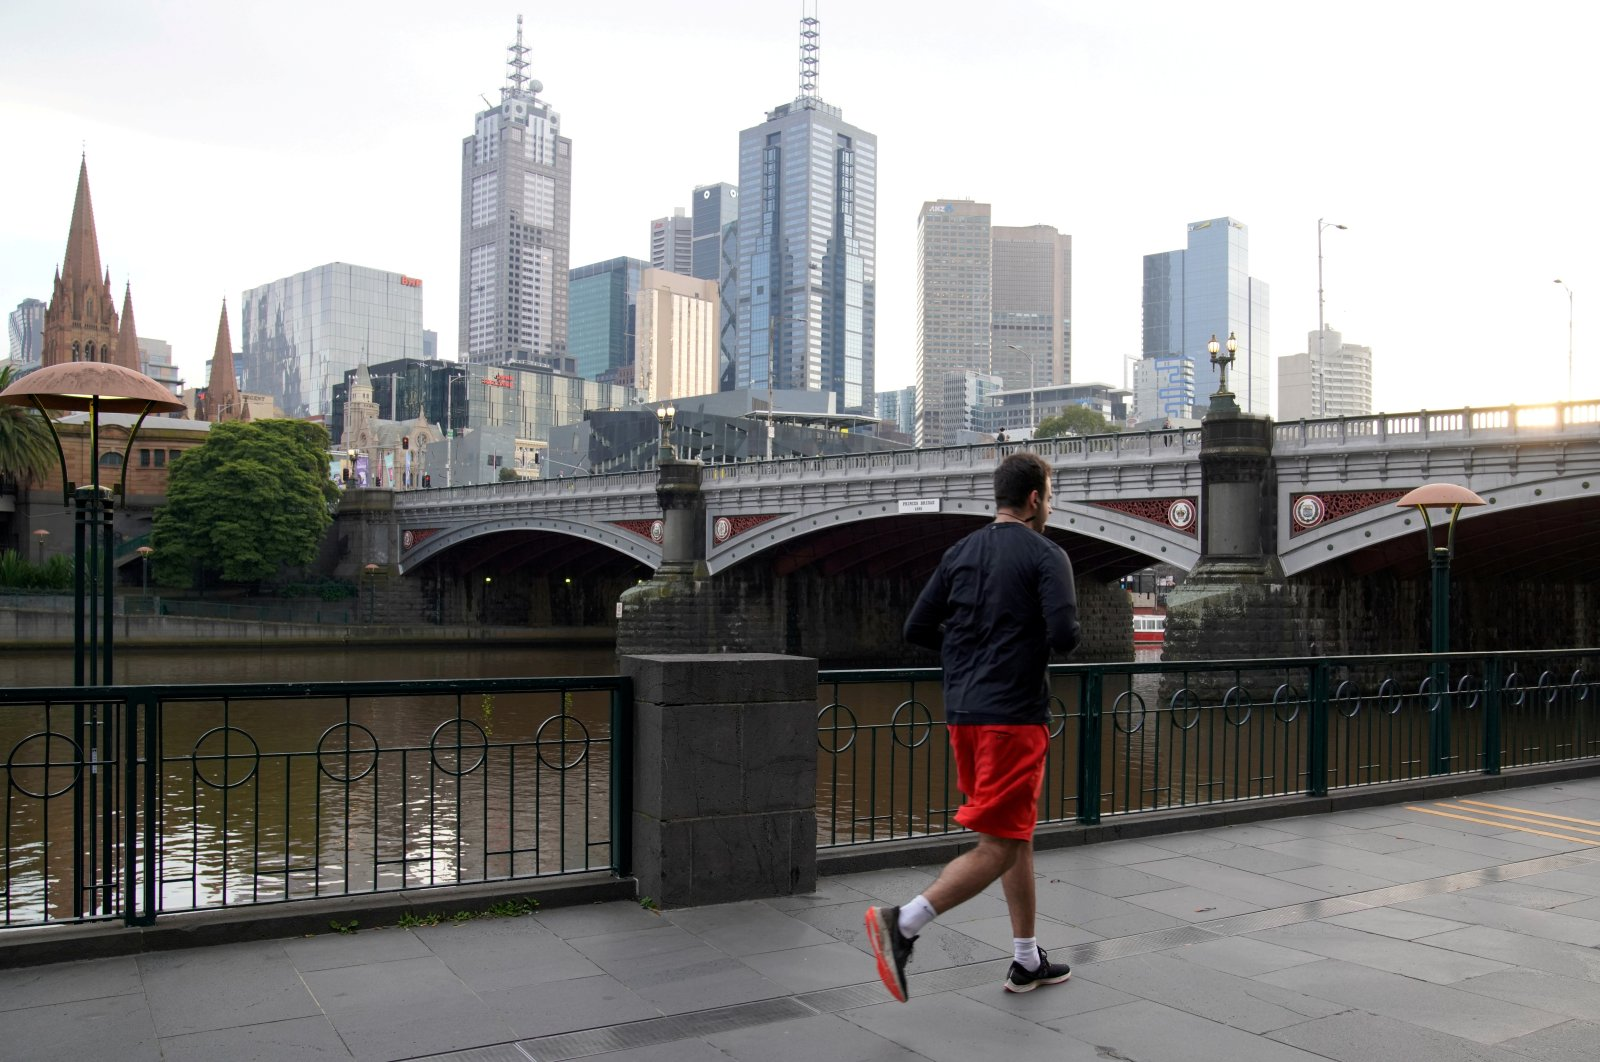 A man runs along a waterway after lockdown restrictions were implemented in response to an outbreak of COVID-19 in Melbourne, Australia, July 10, 2020. (Reuters Photo)